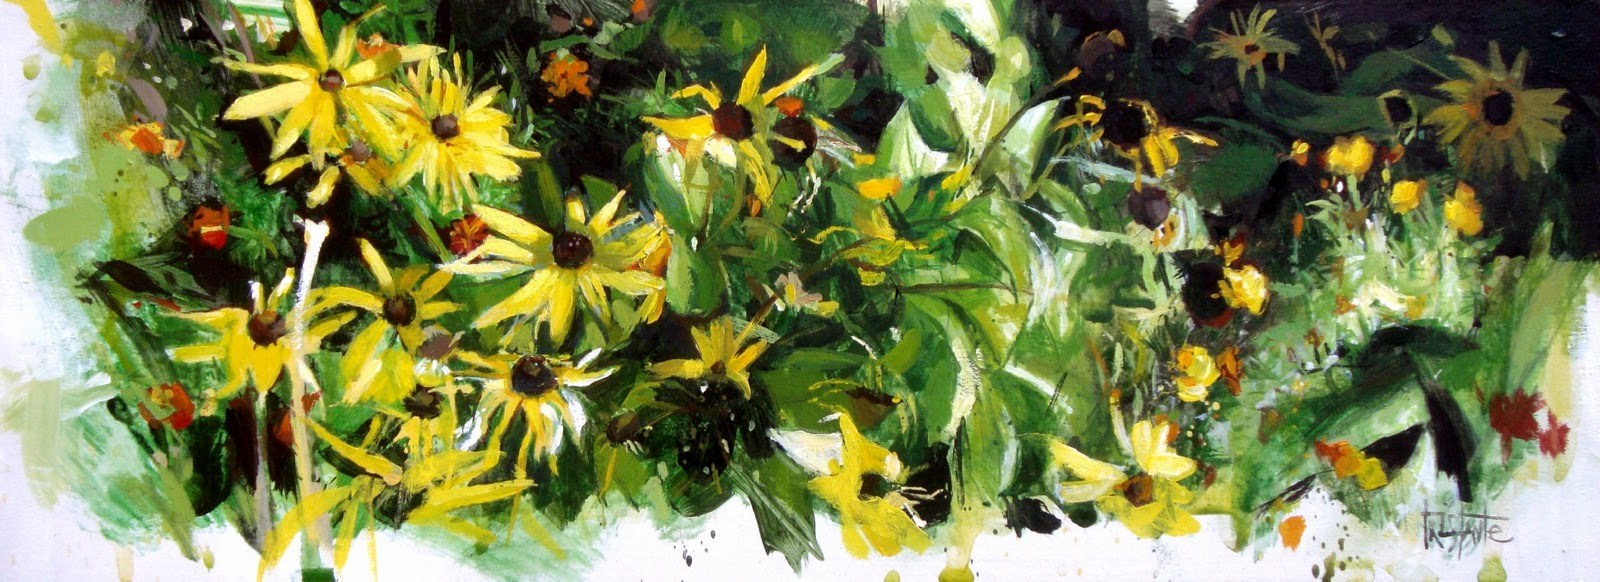 """Landscape of daisies"" original fine art by Víctor Tristante"